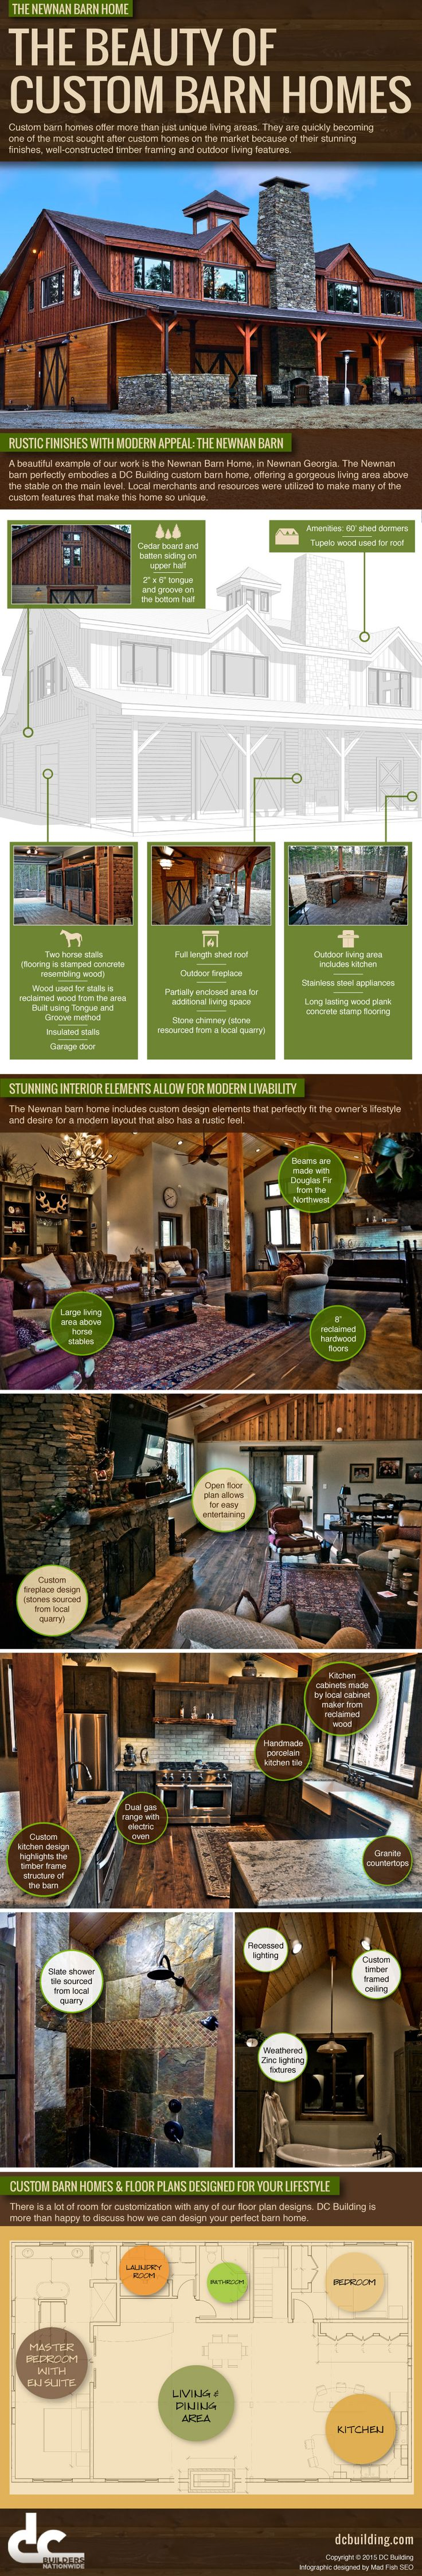 Barn Home Infographic, Newnan, Georgia Barn With Living Quarters